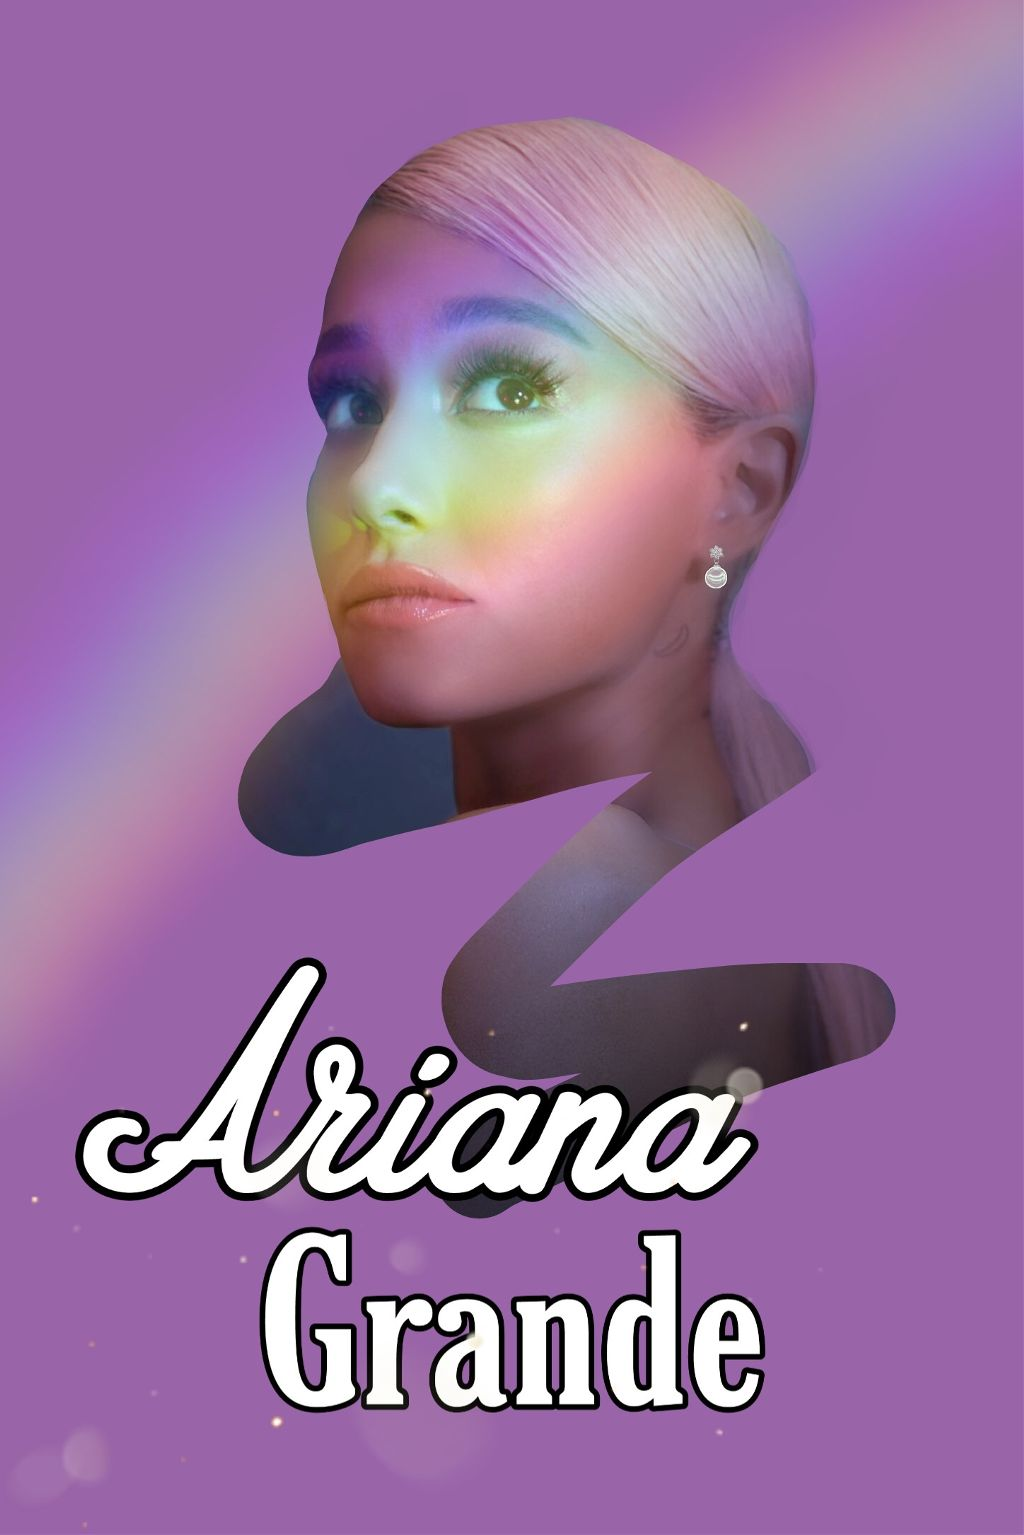 Instagram/YouTube: Margo Picsart ✨💕 #freetoedit #arianagrande #sweetener #arcoiris #girl #text